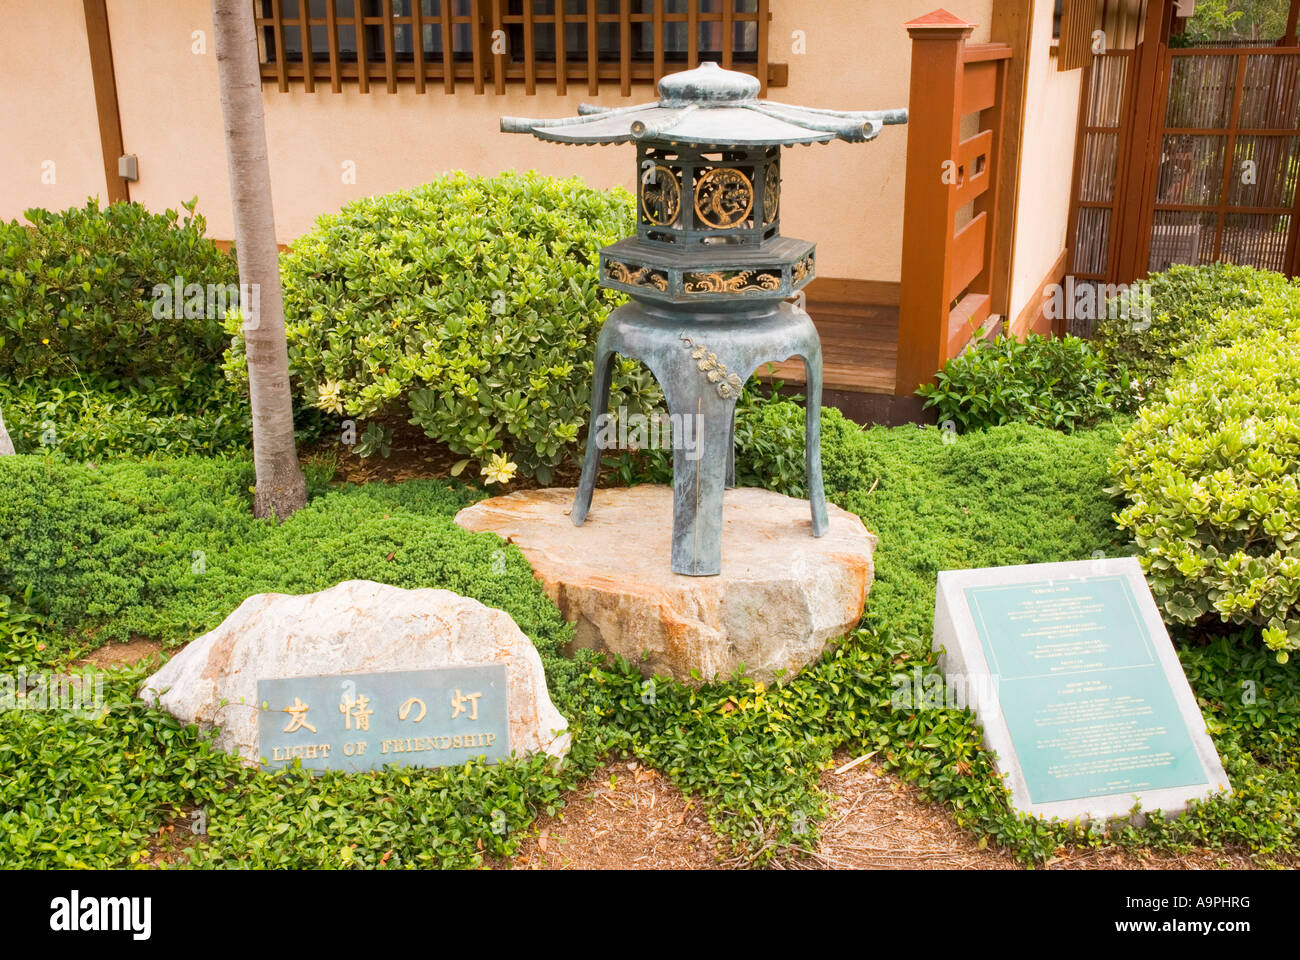 Stock Photo   The Light Of Friendship Lantern At The Japanese Friendship  Garden In Balboa Park San Diego California